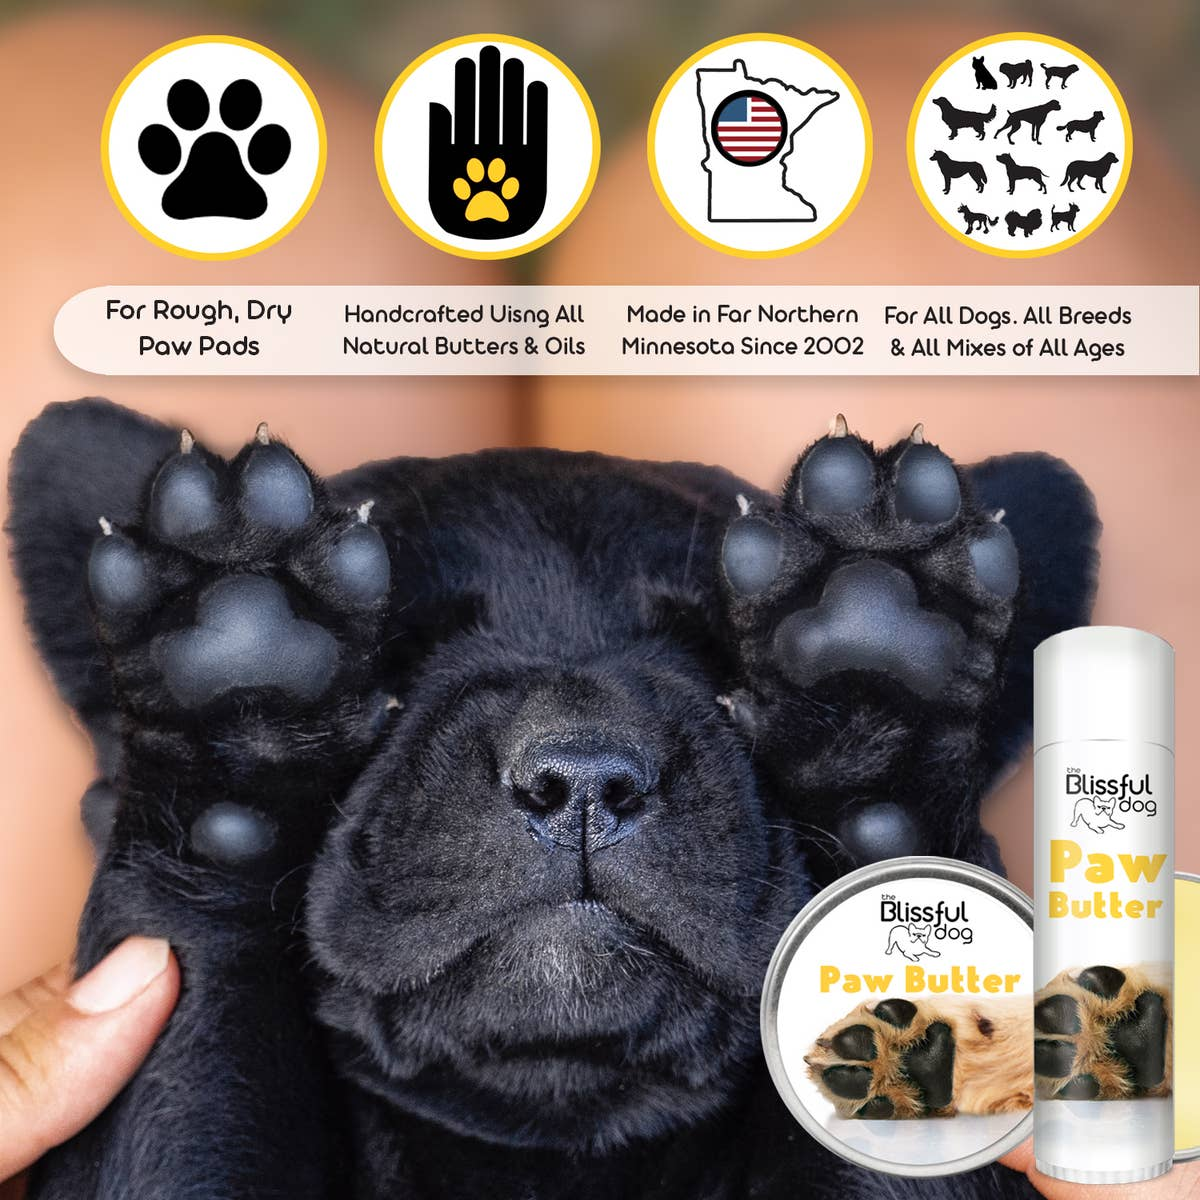 Paw Butter for Rough, Dry Dog Paws